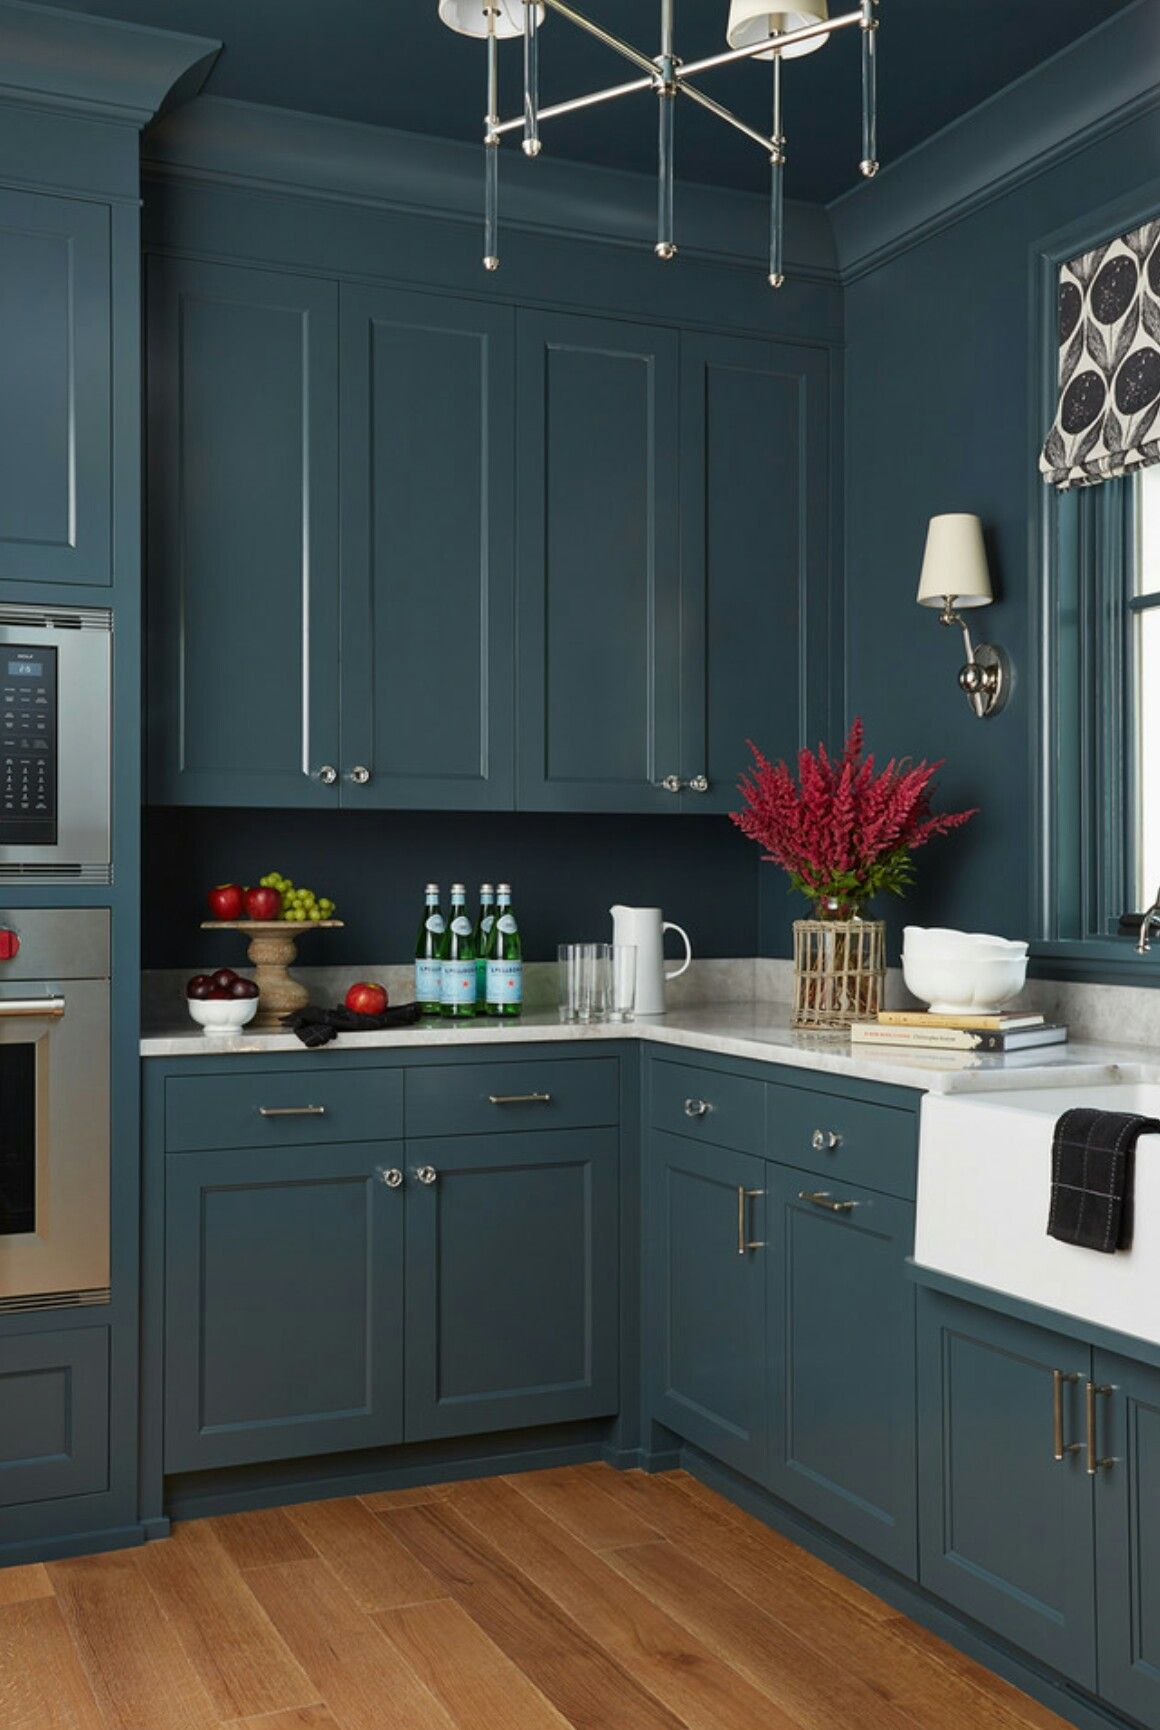 Pin by Gerne Vos on kitchen cupboards | Teal kitchen, New ...